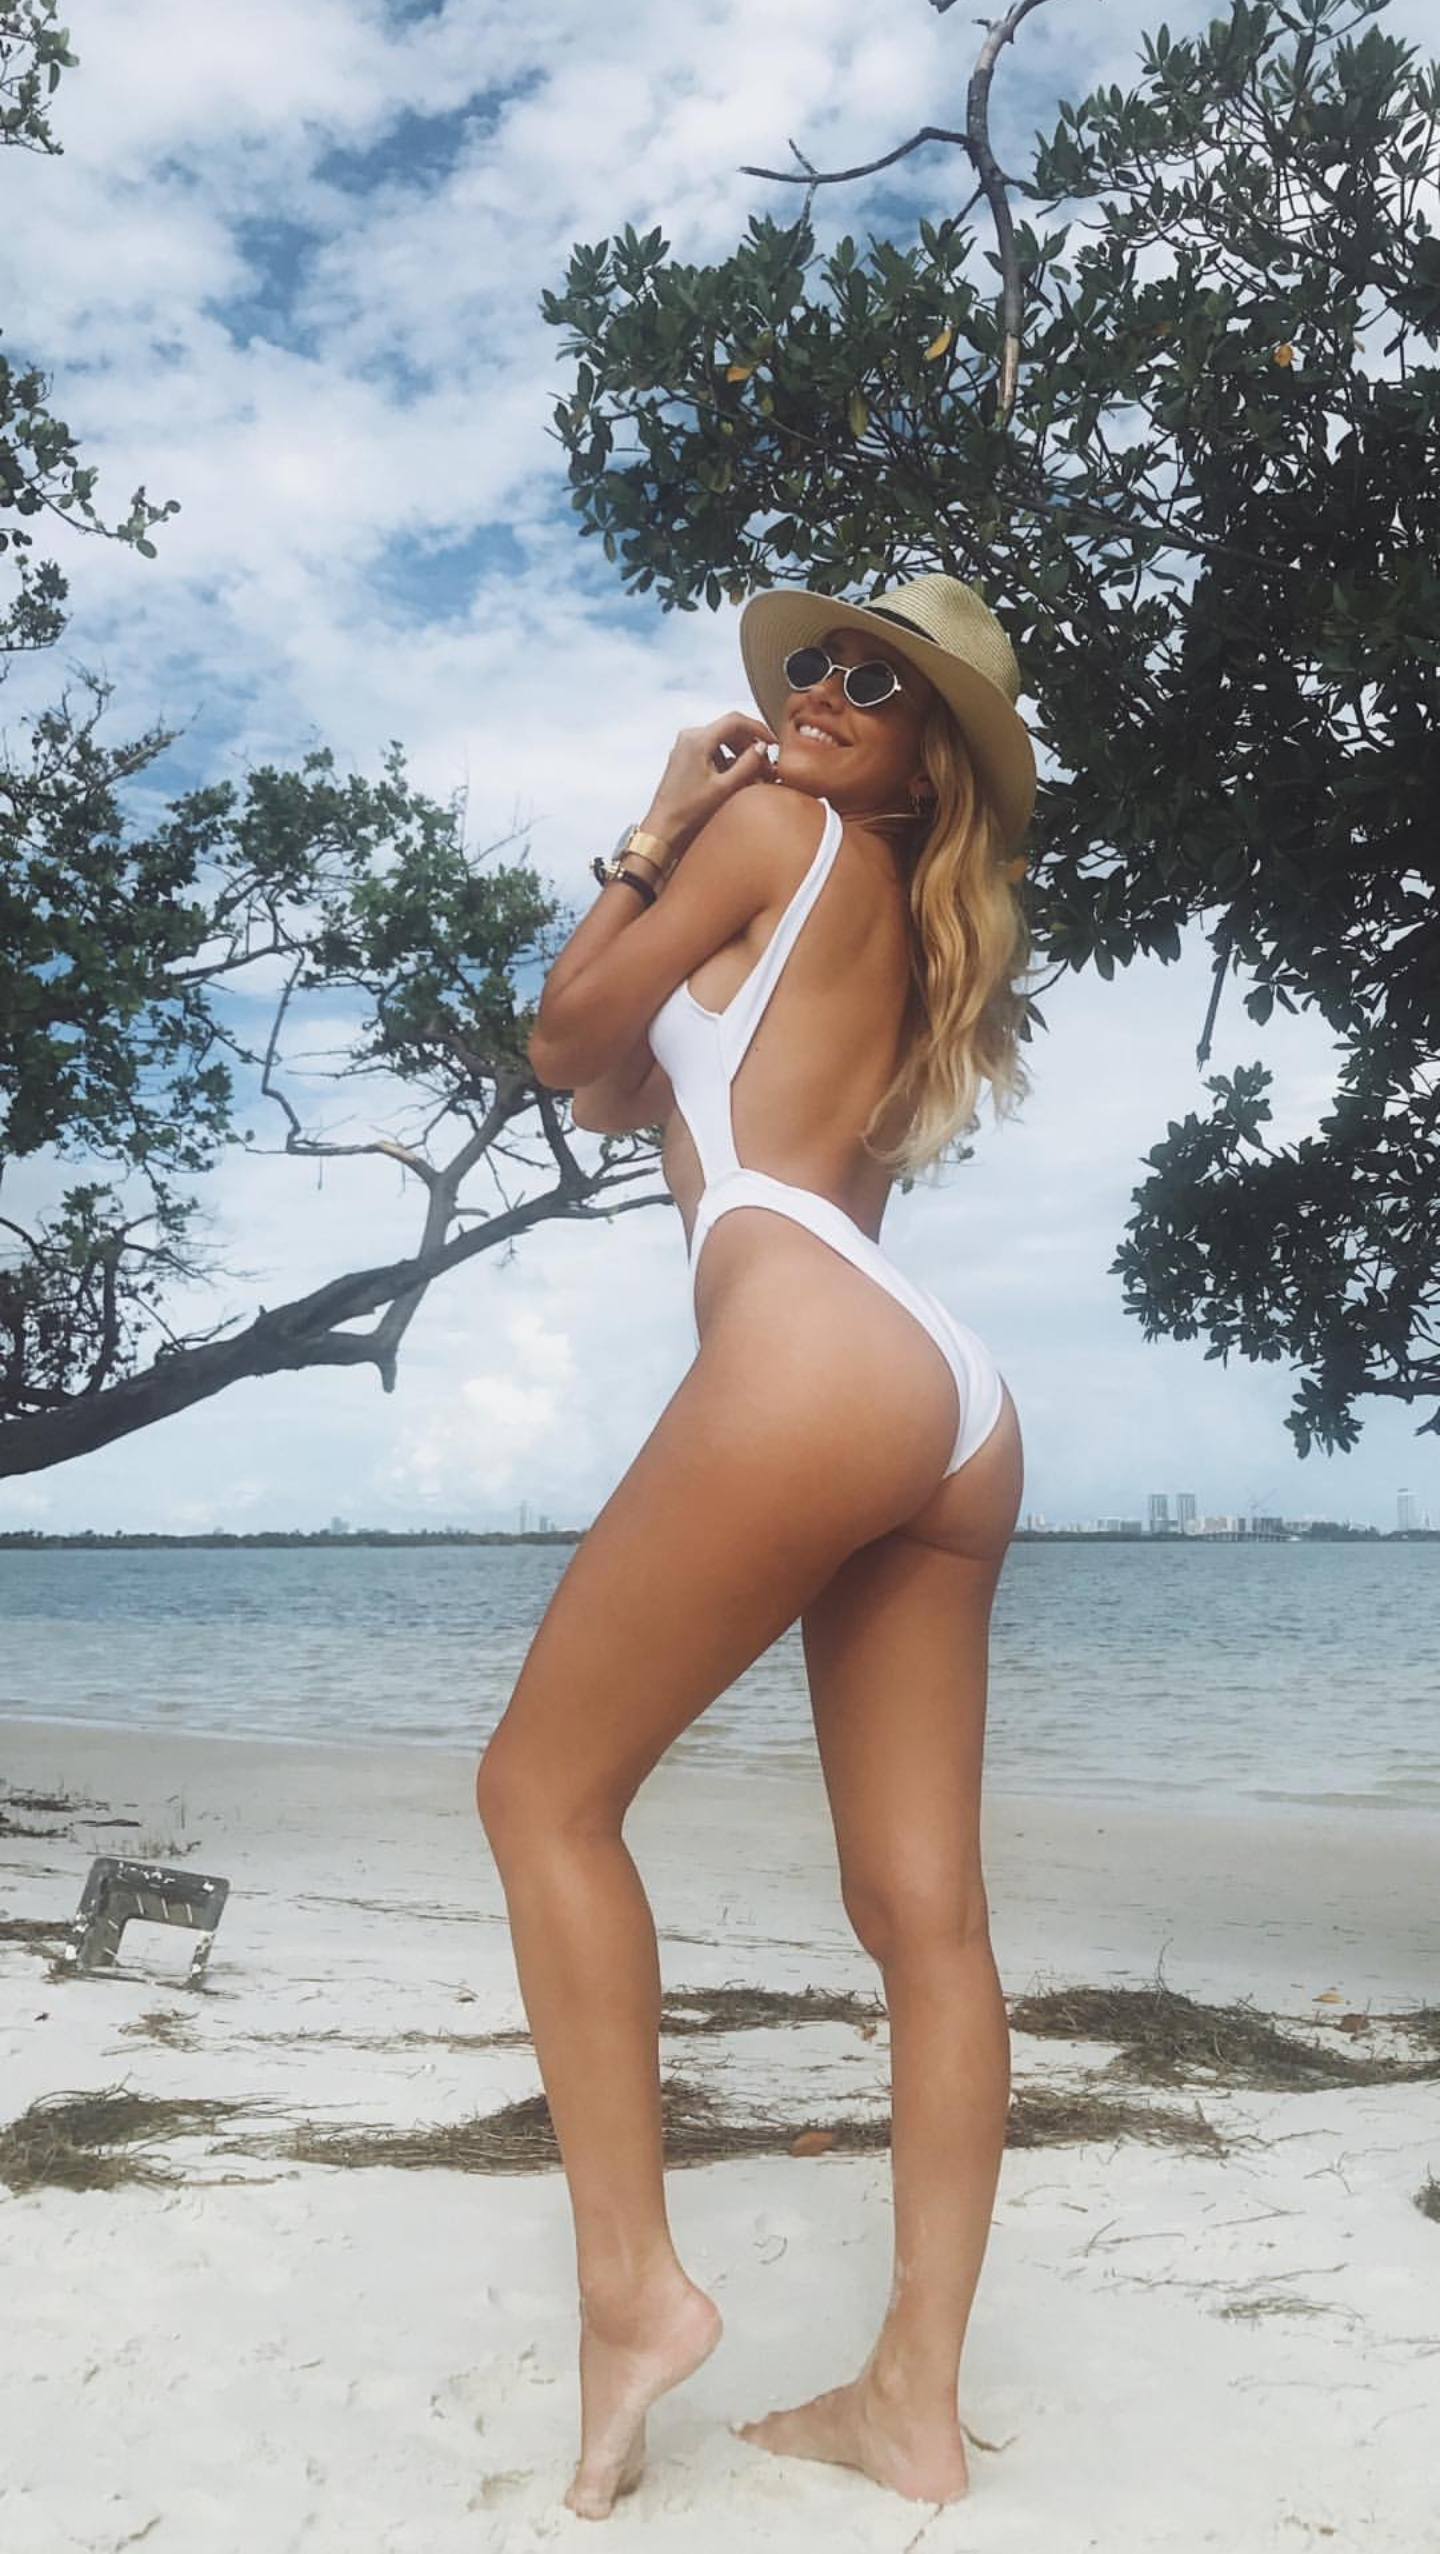 Feet Cindy Prado nude (21 photo), Ass, Bikini, Instagram, cleavage 2006